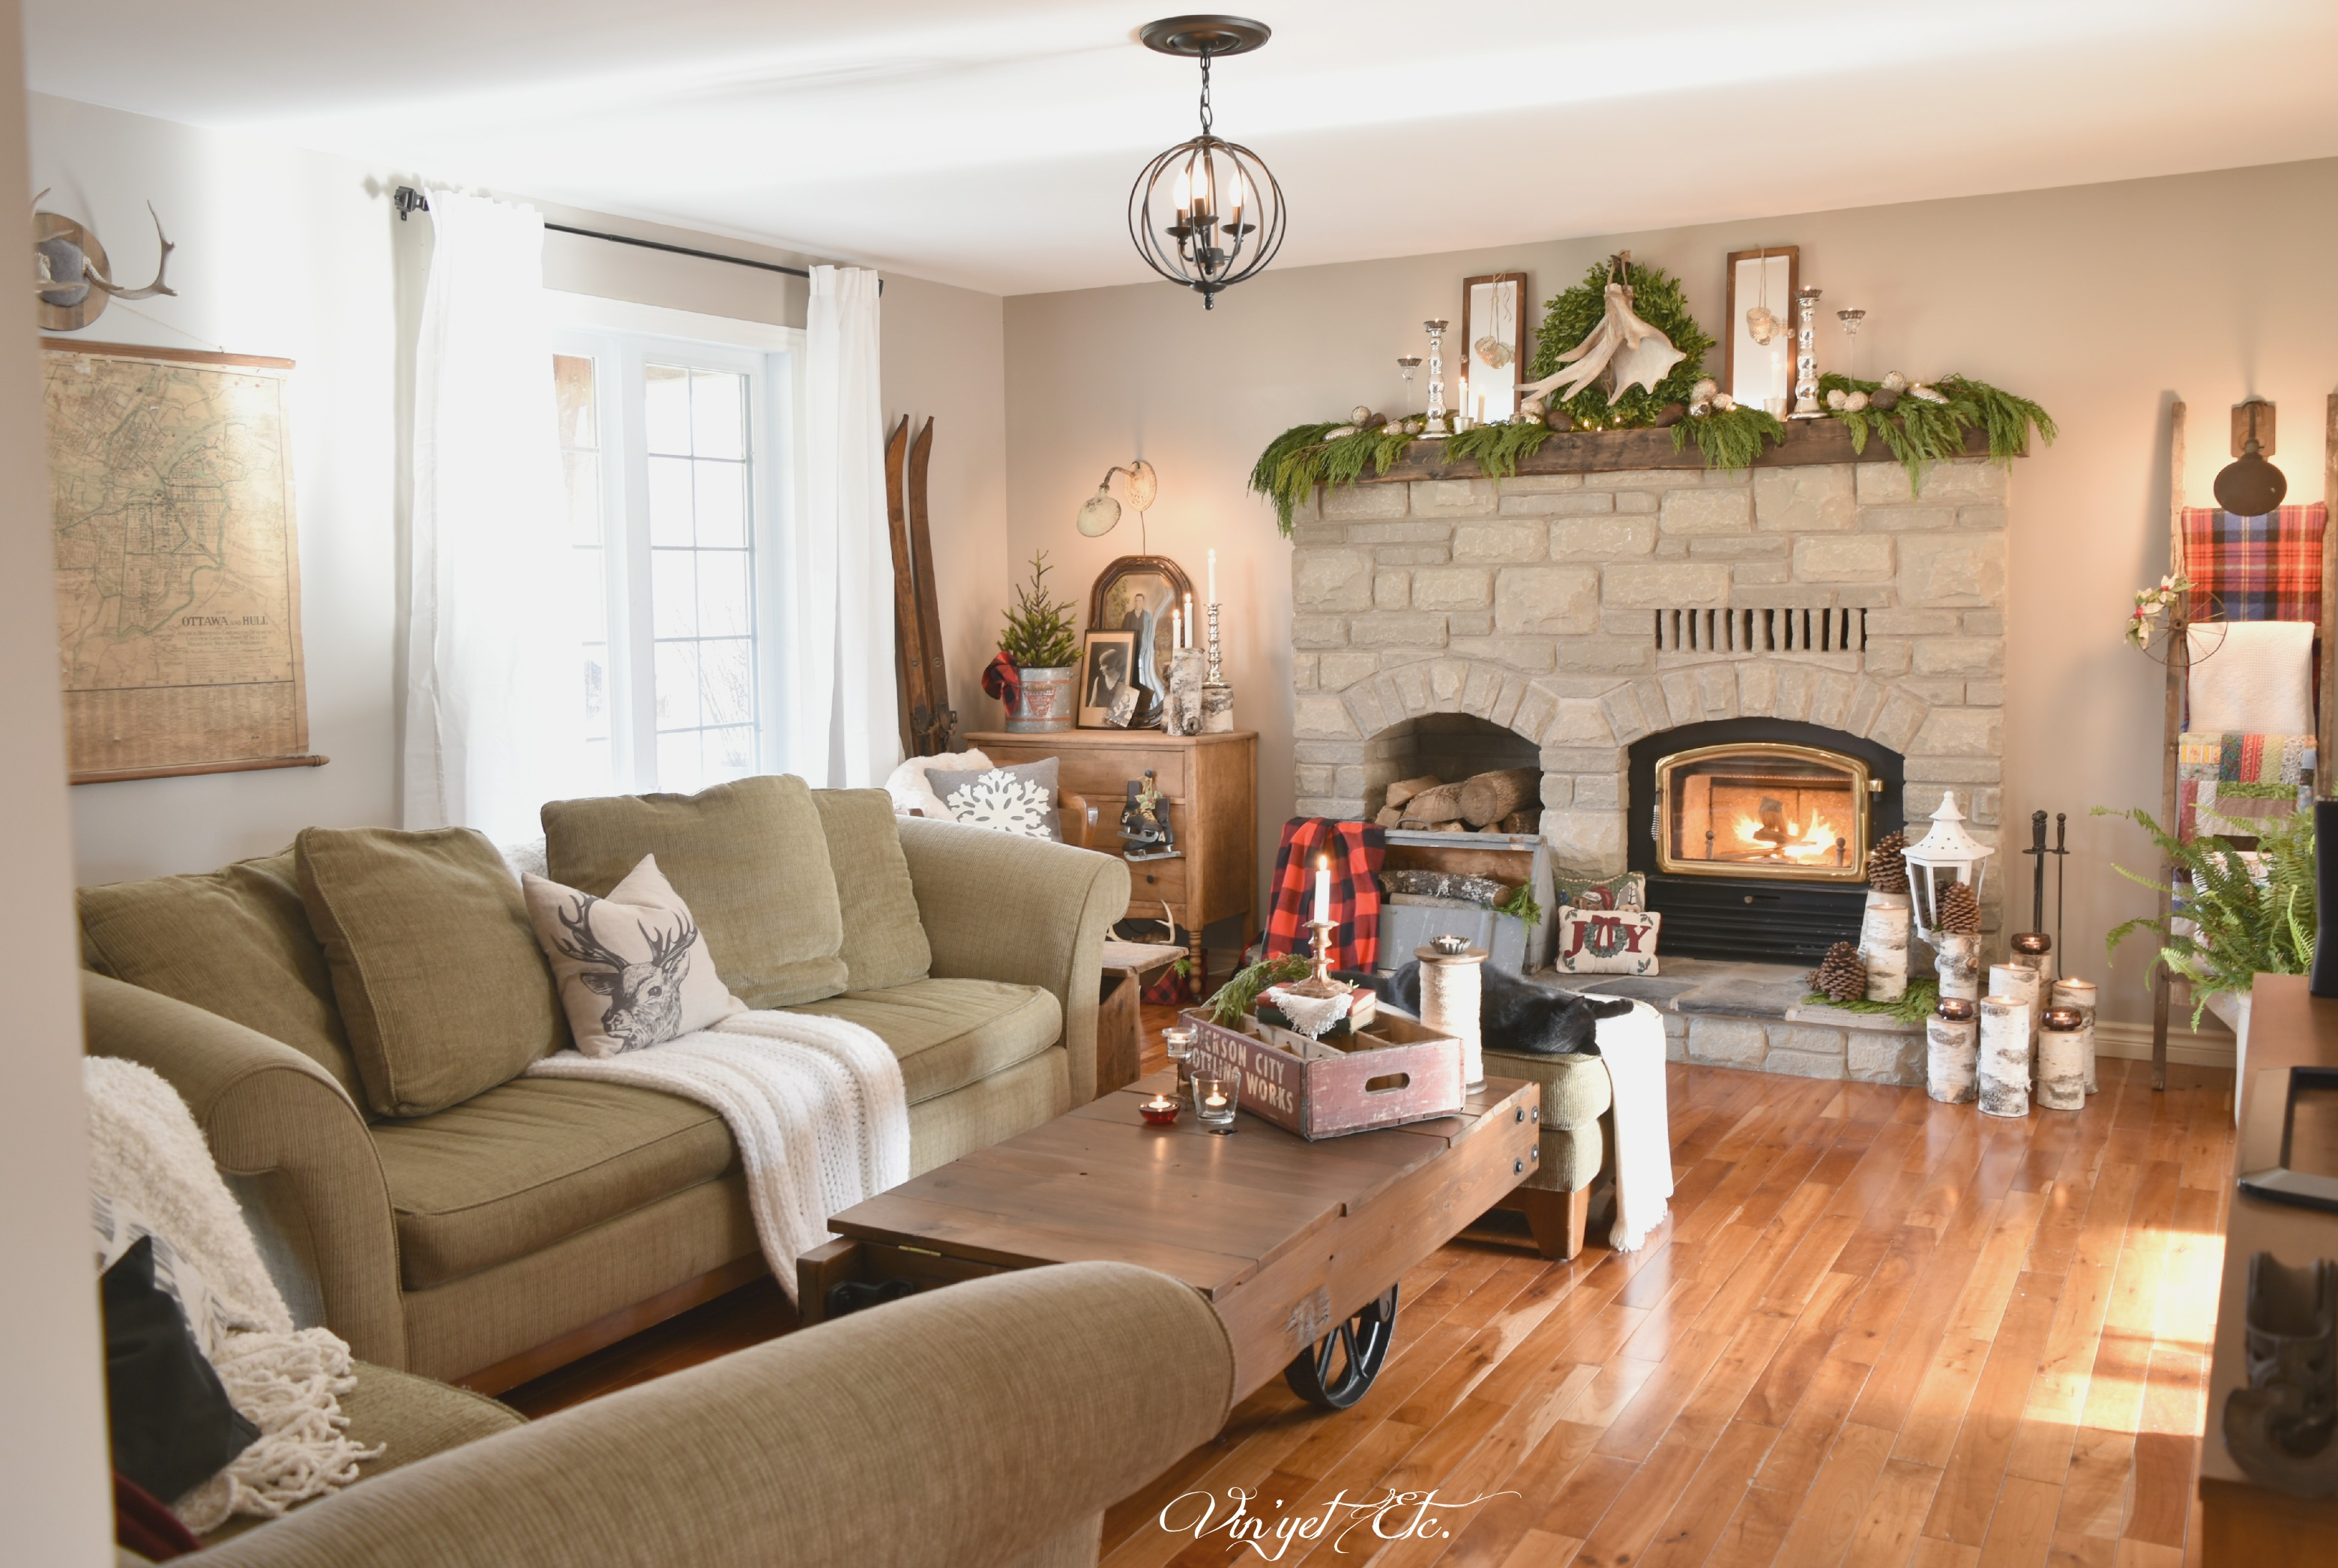 Farmhouse Rustic Fireplace Mantel Decor Rustic Farmhouse Christmas Mantel Home For The Holidays